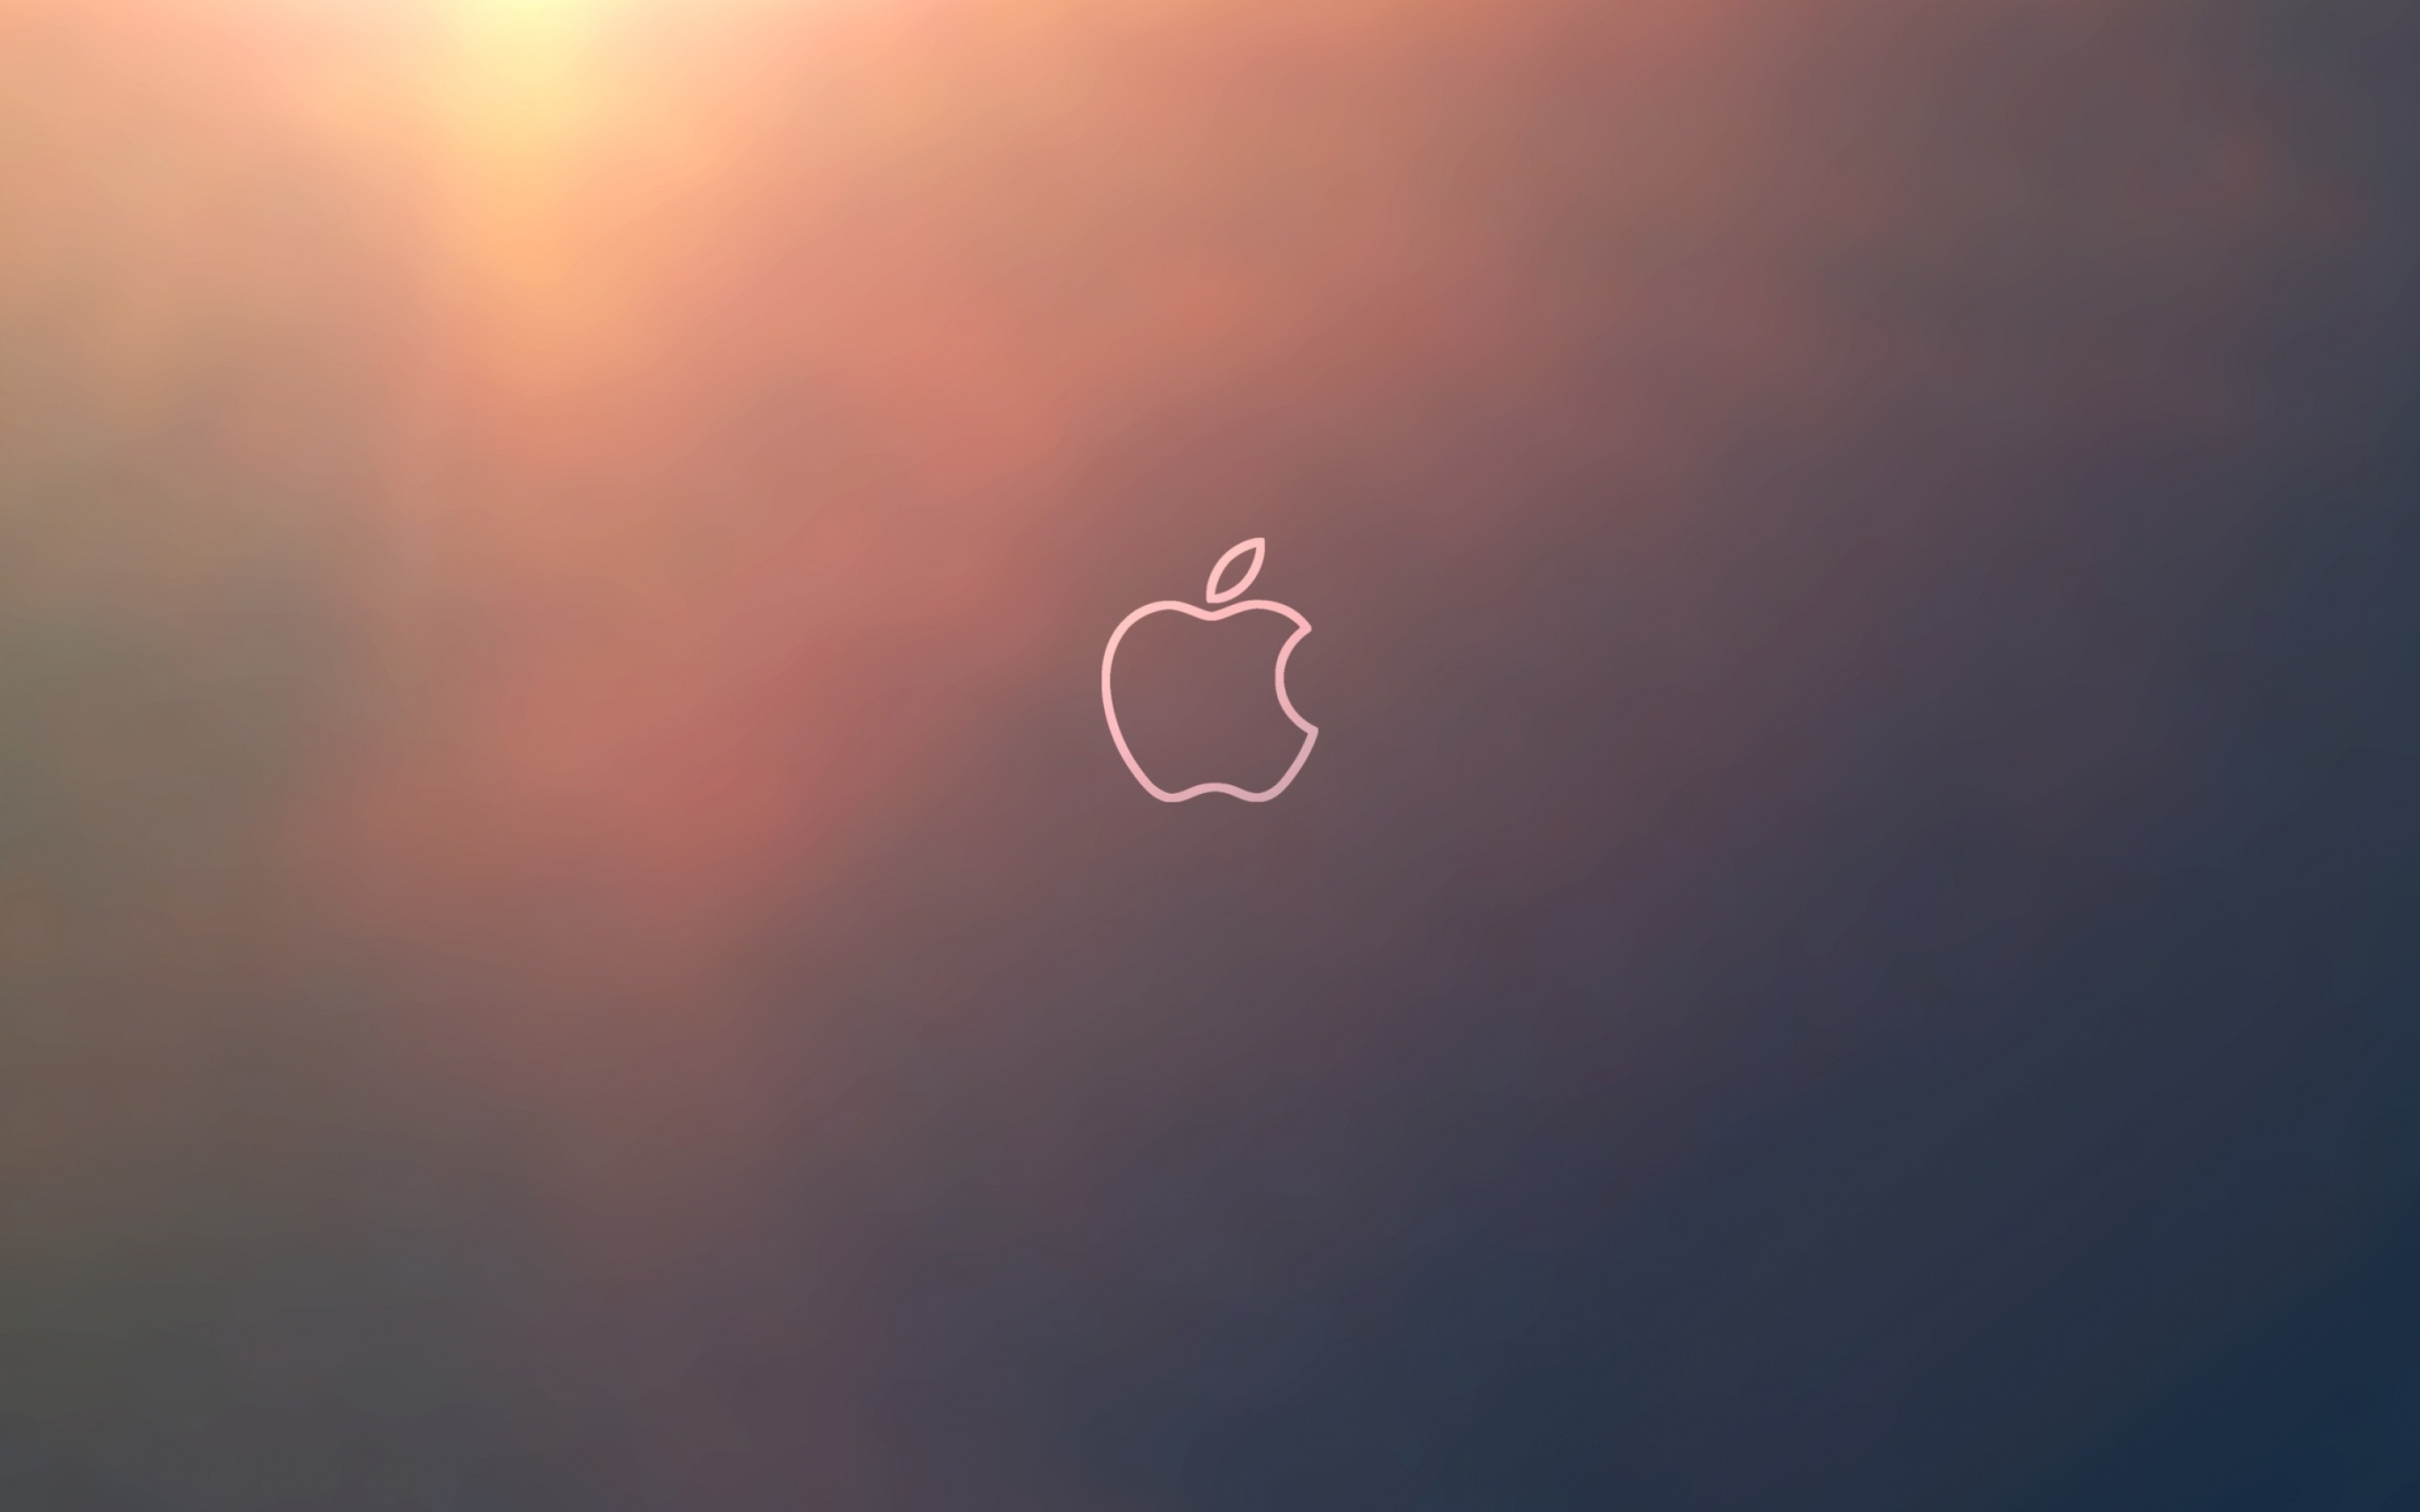 Macbook air wallpapers hd